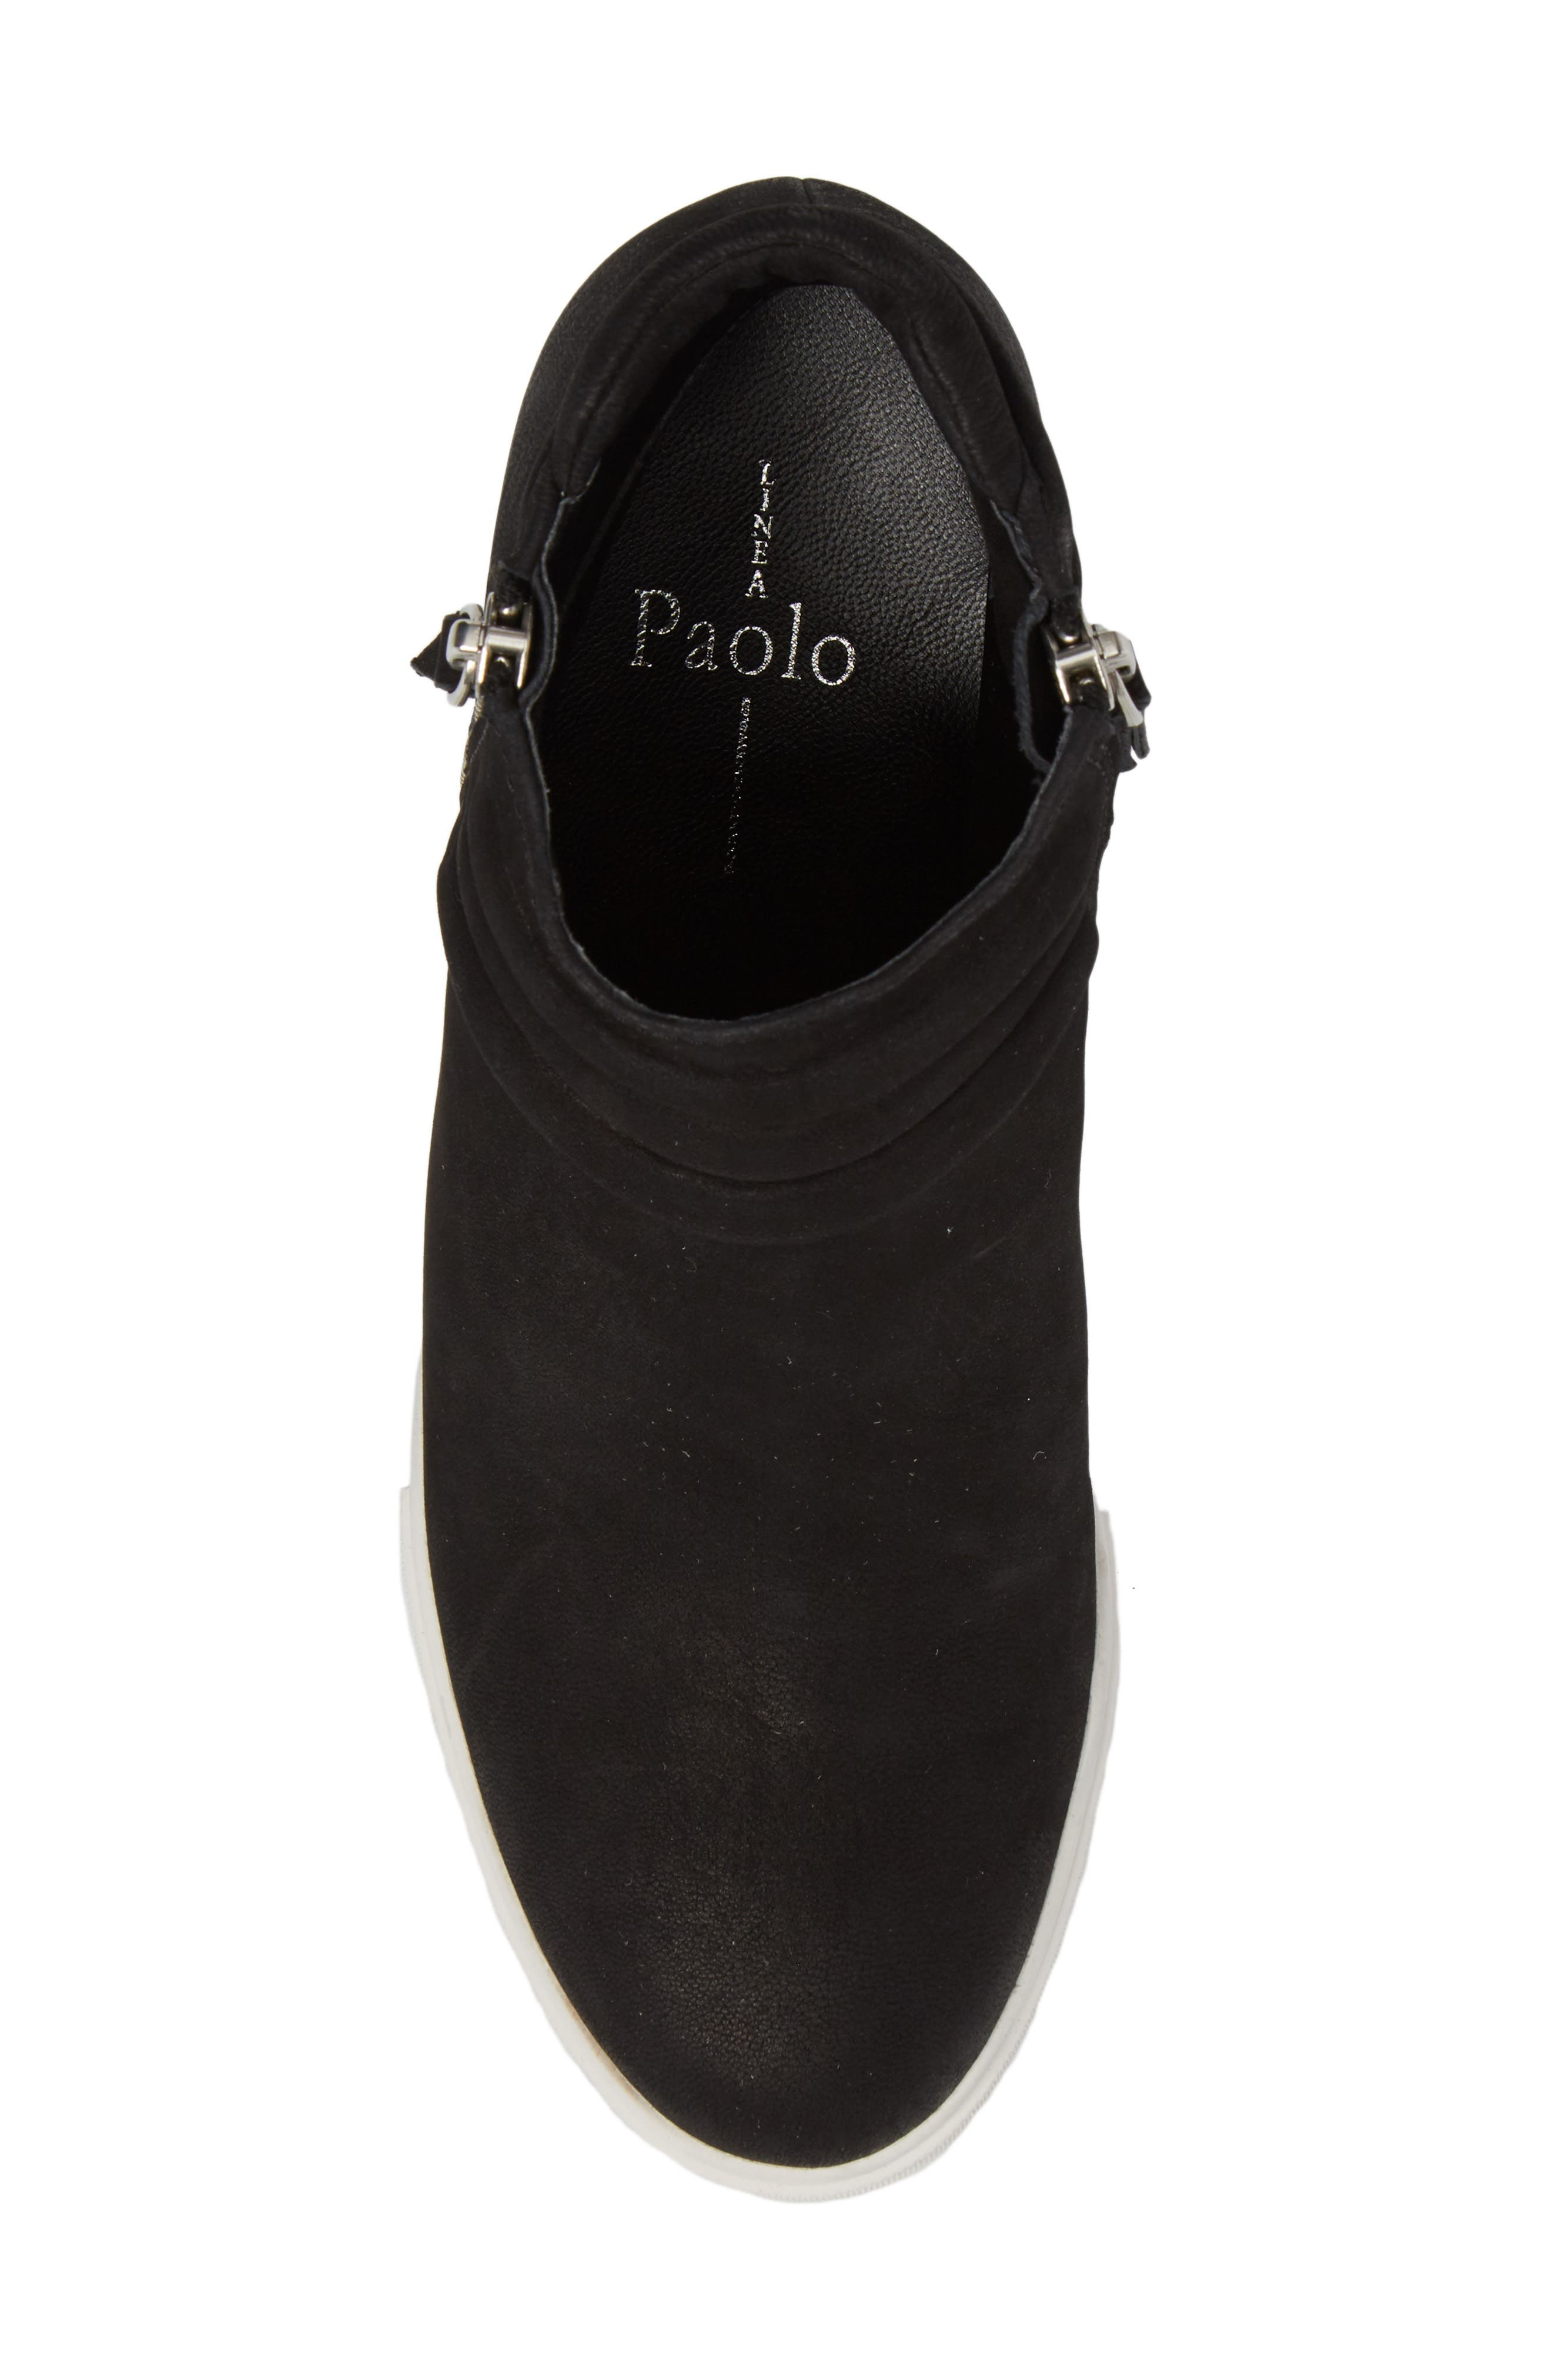 LINEA PAOLO, Frieda Wedge Bootie, Alternate thumbnail 5, color, BLACK LEATHER